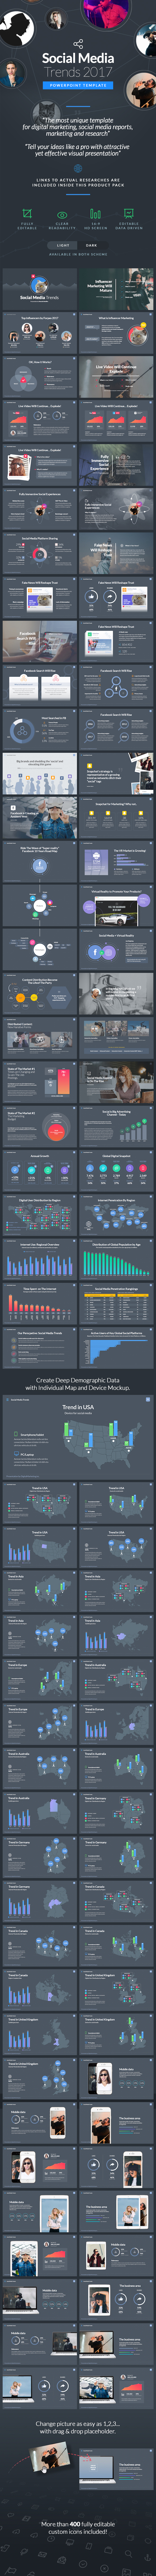 Social Media Trends - Powerpoint Template - PowerPoint Templates Presentation Templates